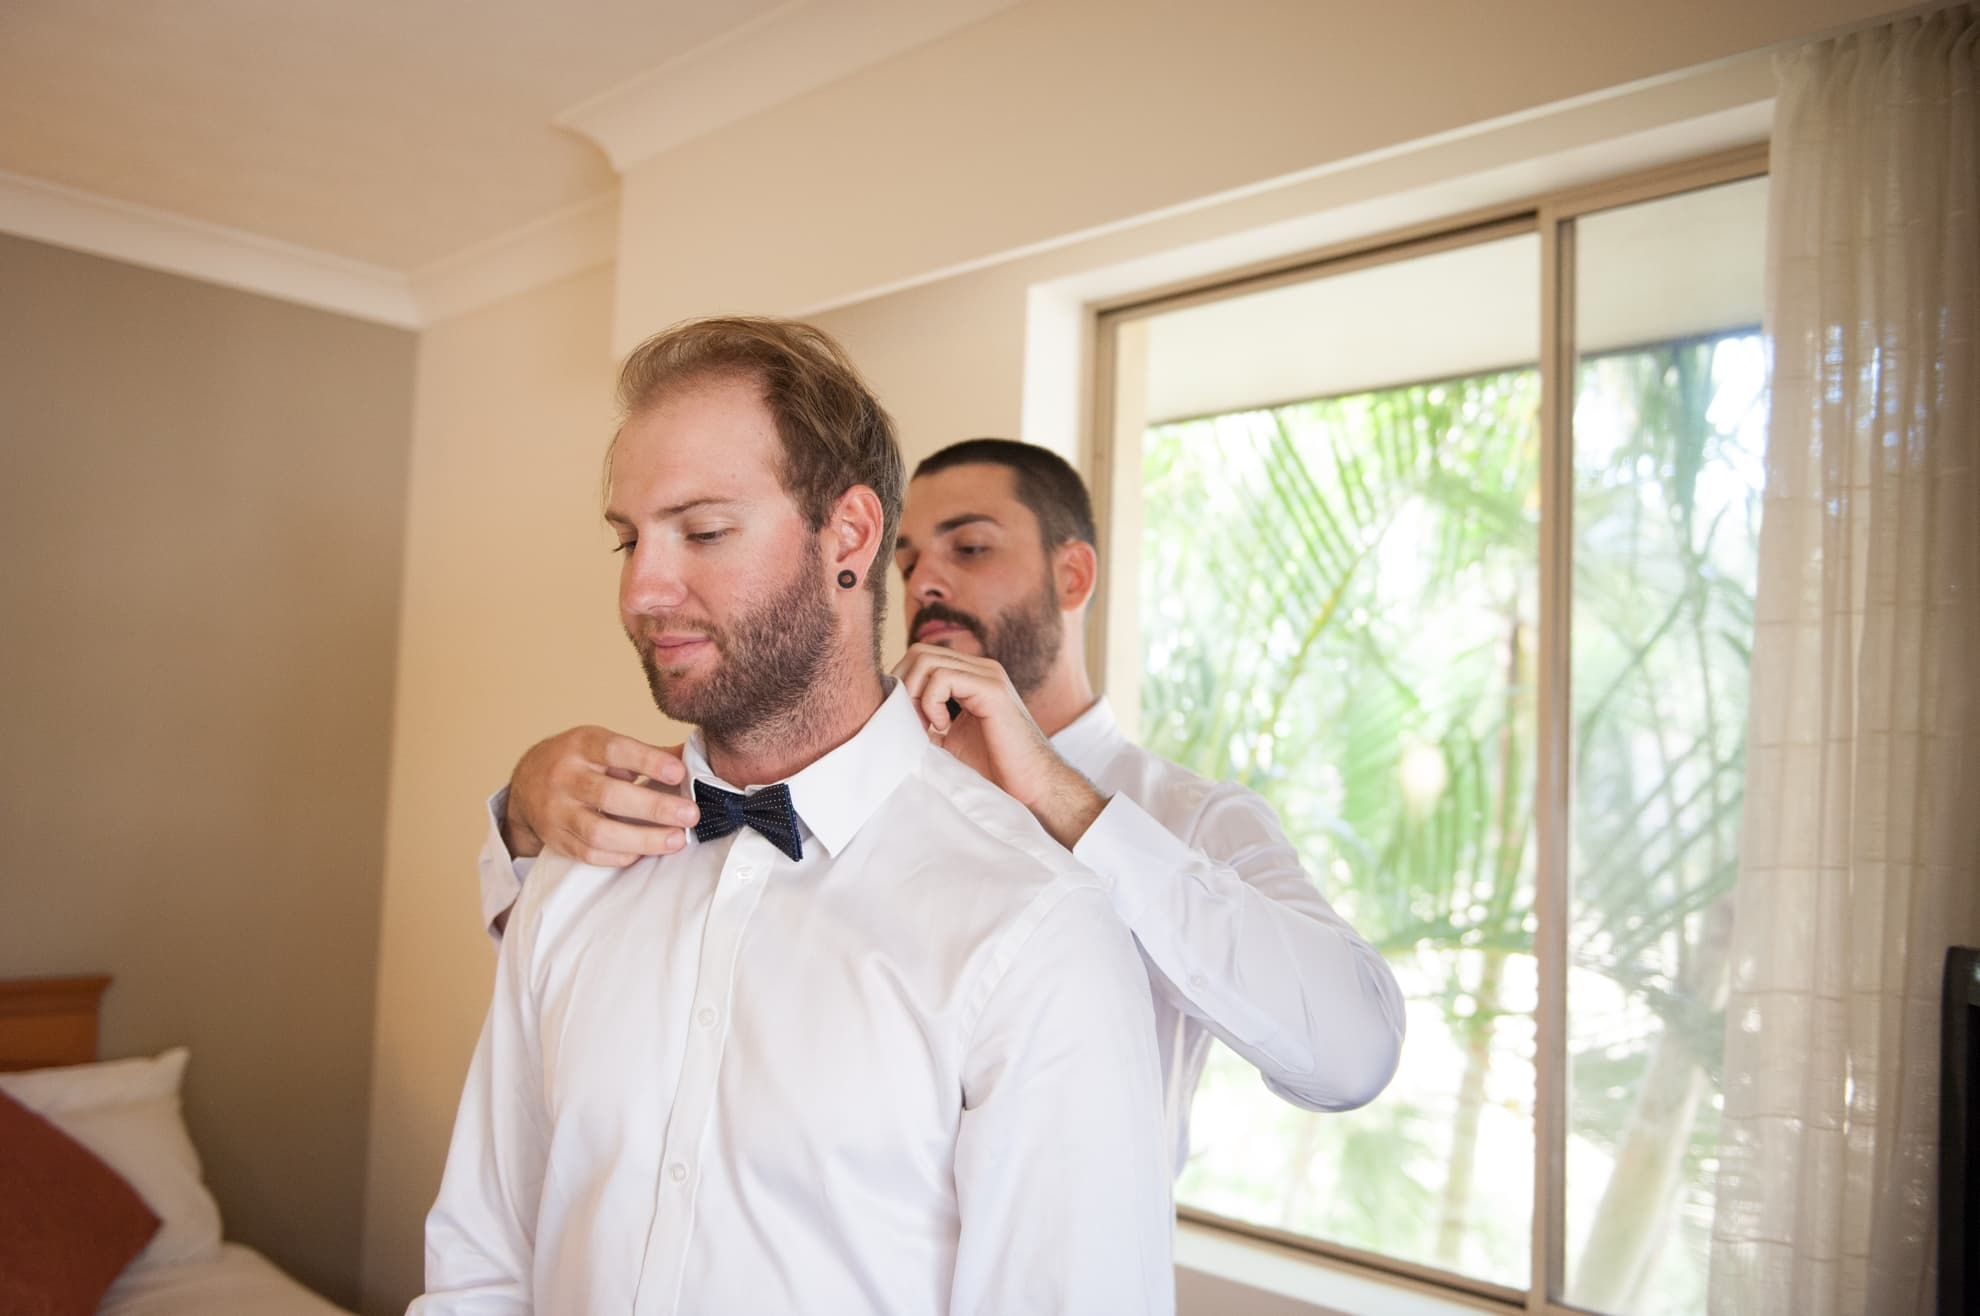 groomsmen-helping-the-groom-with-his-bowtie